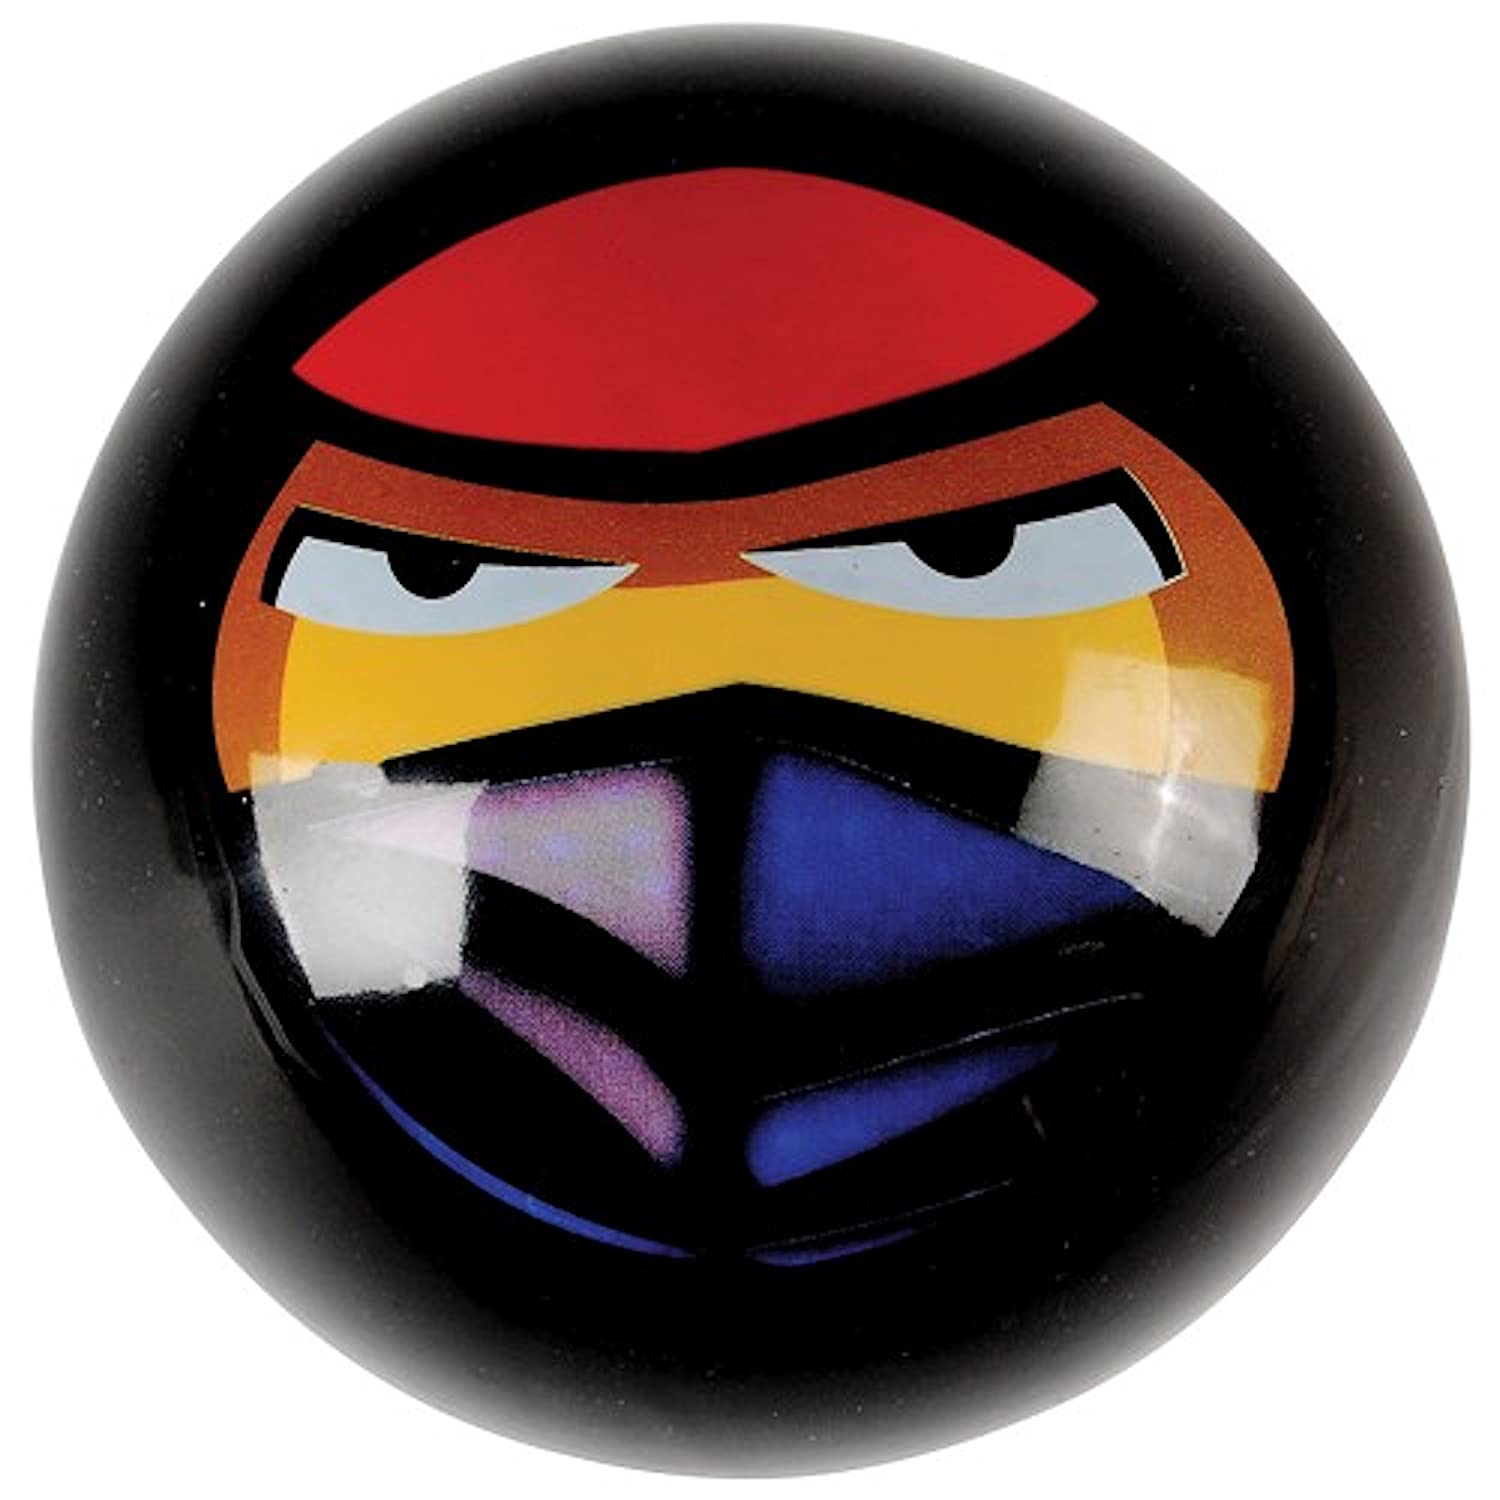 Amazon.com : Ninja Design Inflatable Small Balls (12 ...